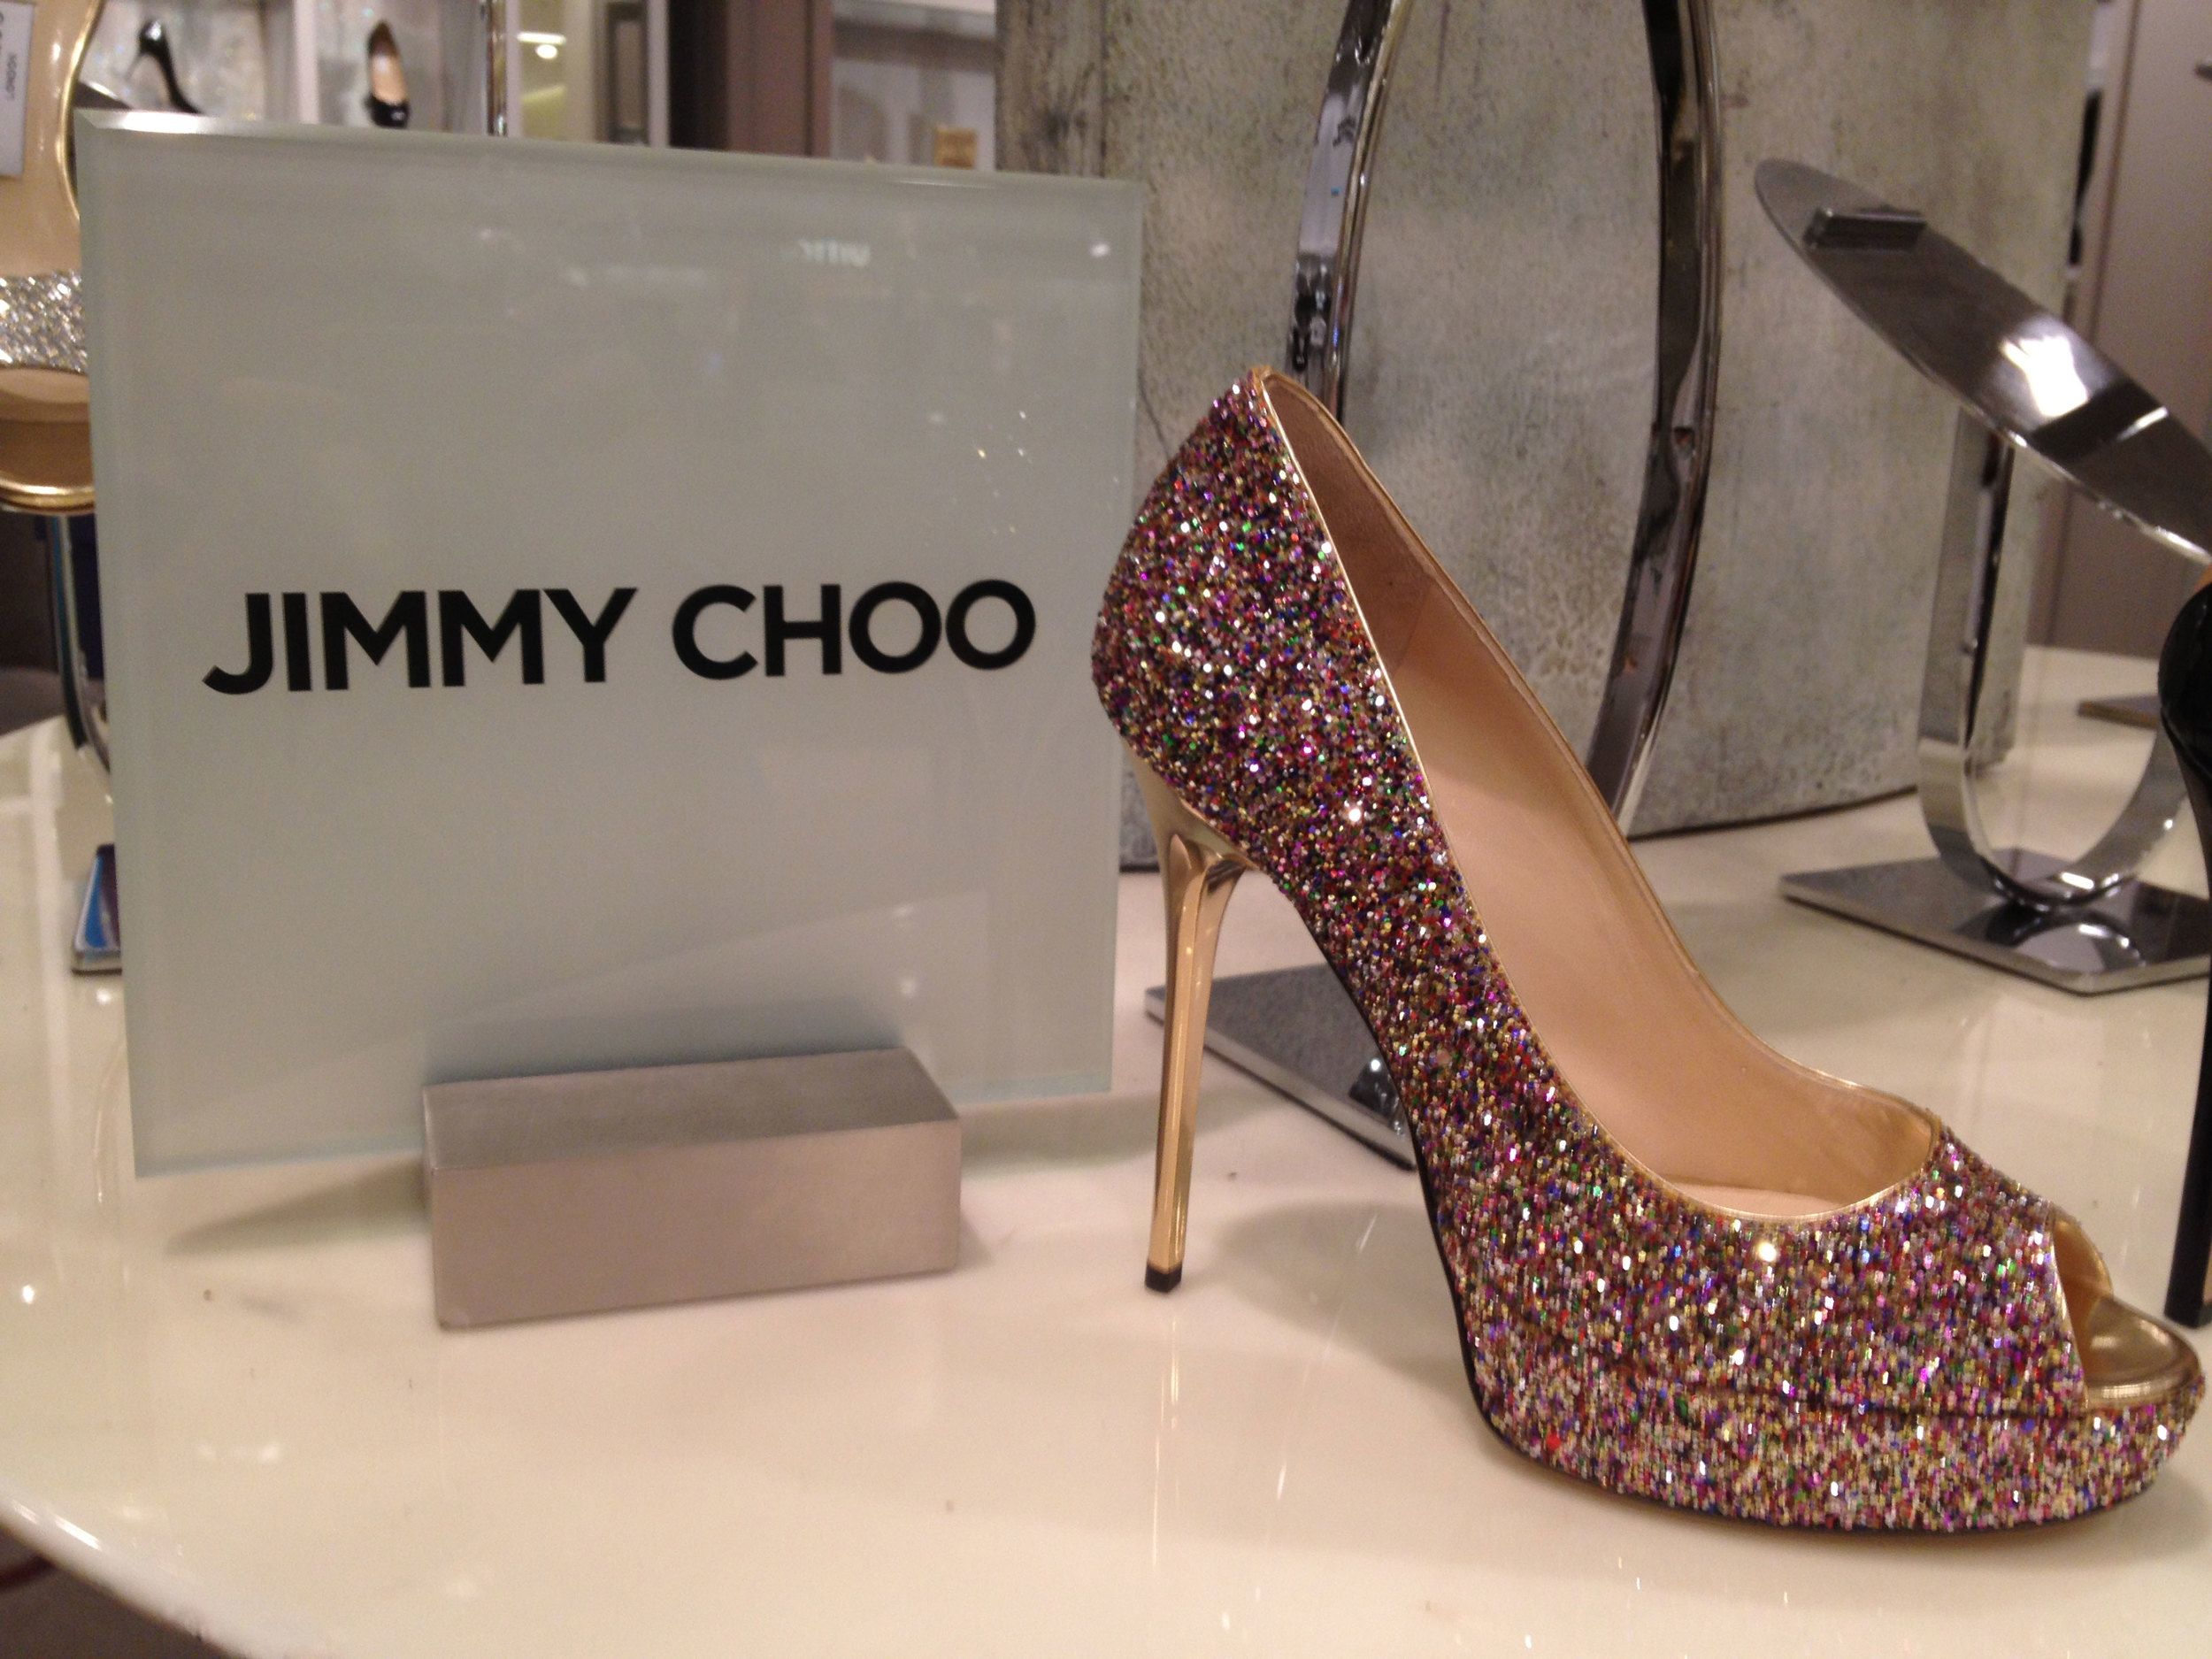 Sassy shoes! Glitzy stilettos = a fixture of Southern couture.